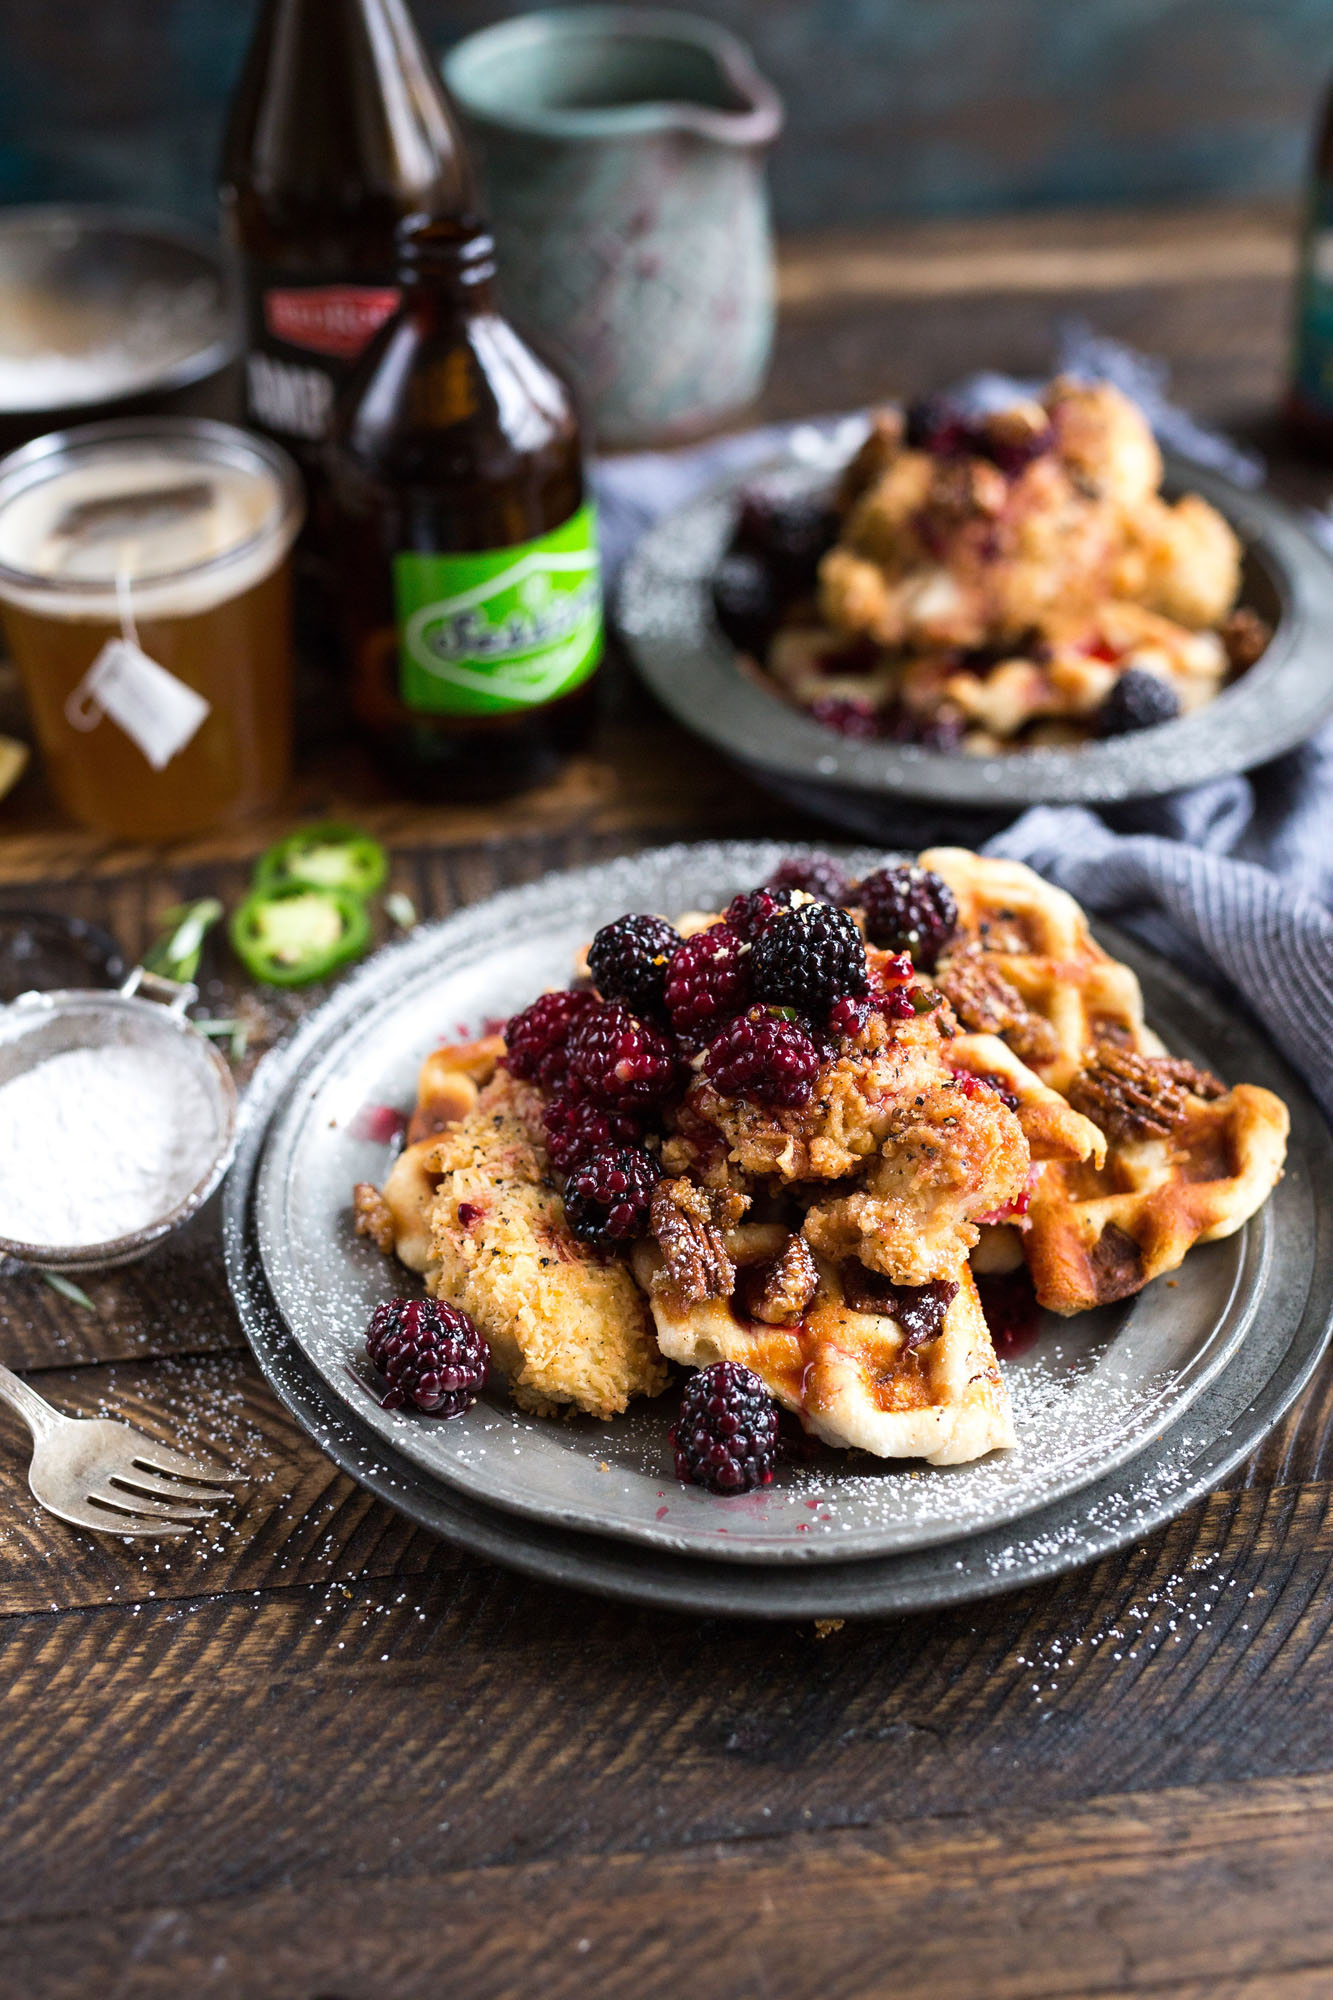 fried chicken and waffles in restaurant | Austin restaurant writer | Mandy Ellis freelance writer